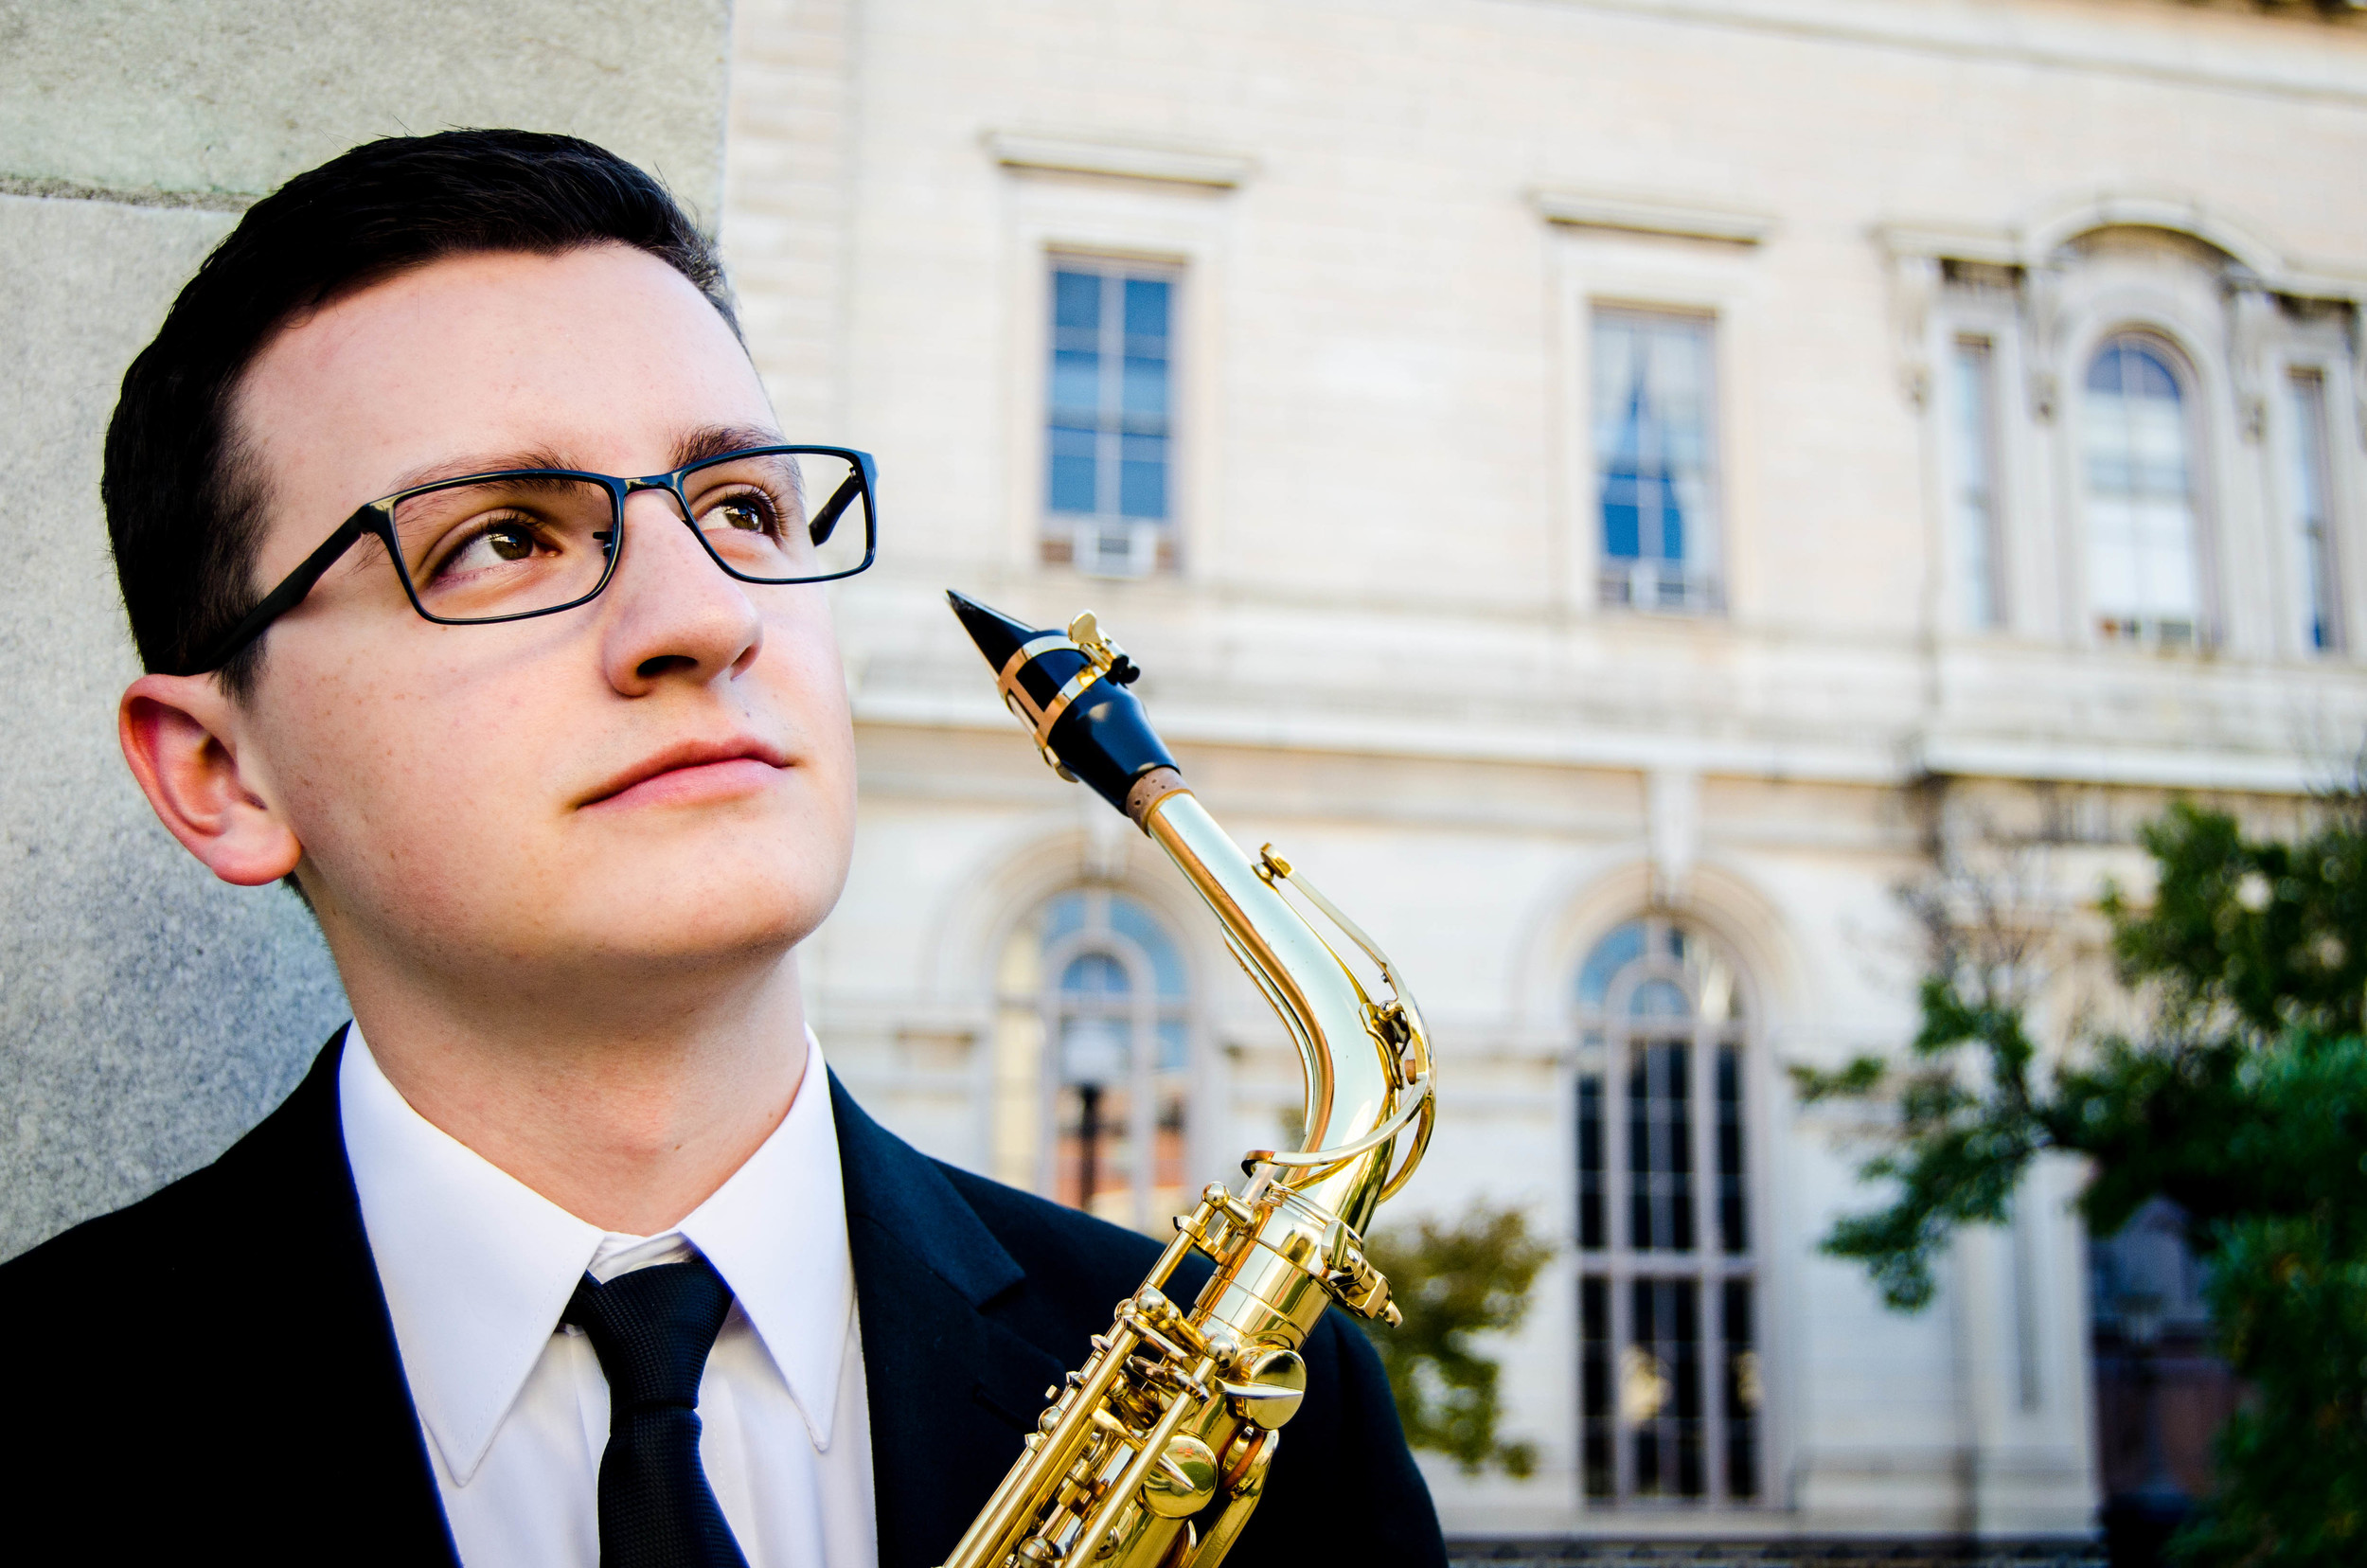 Sean Meyers | Saxophonist | Director of Artistic Operations